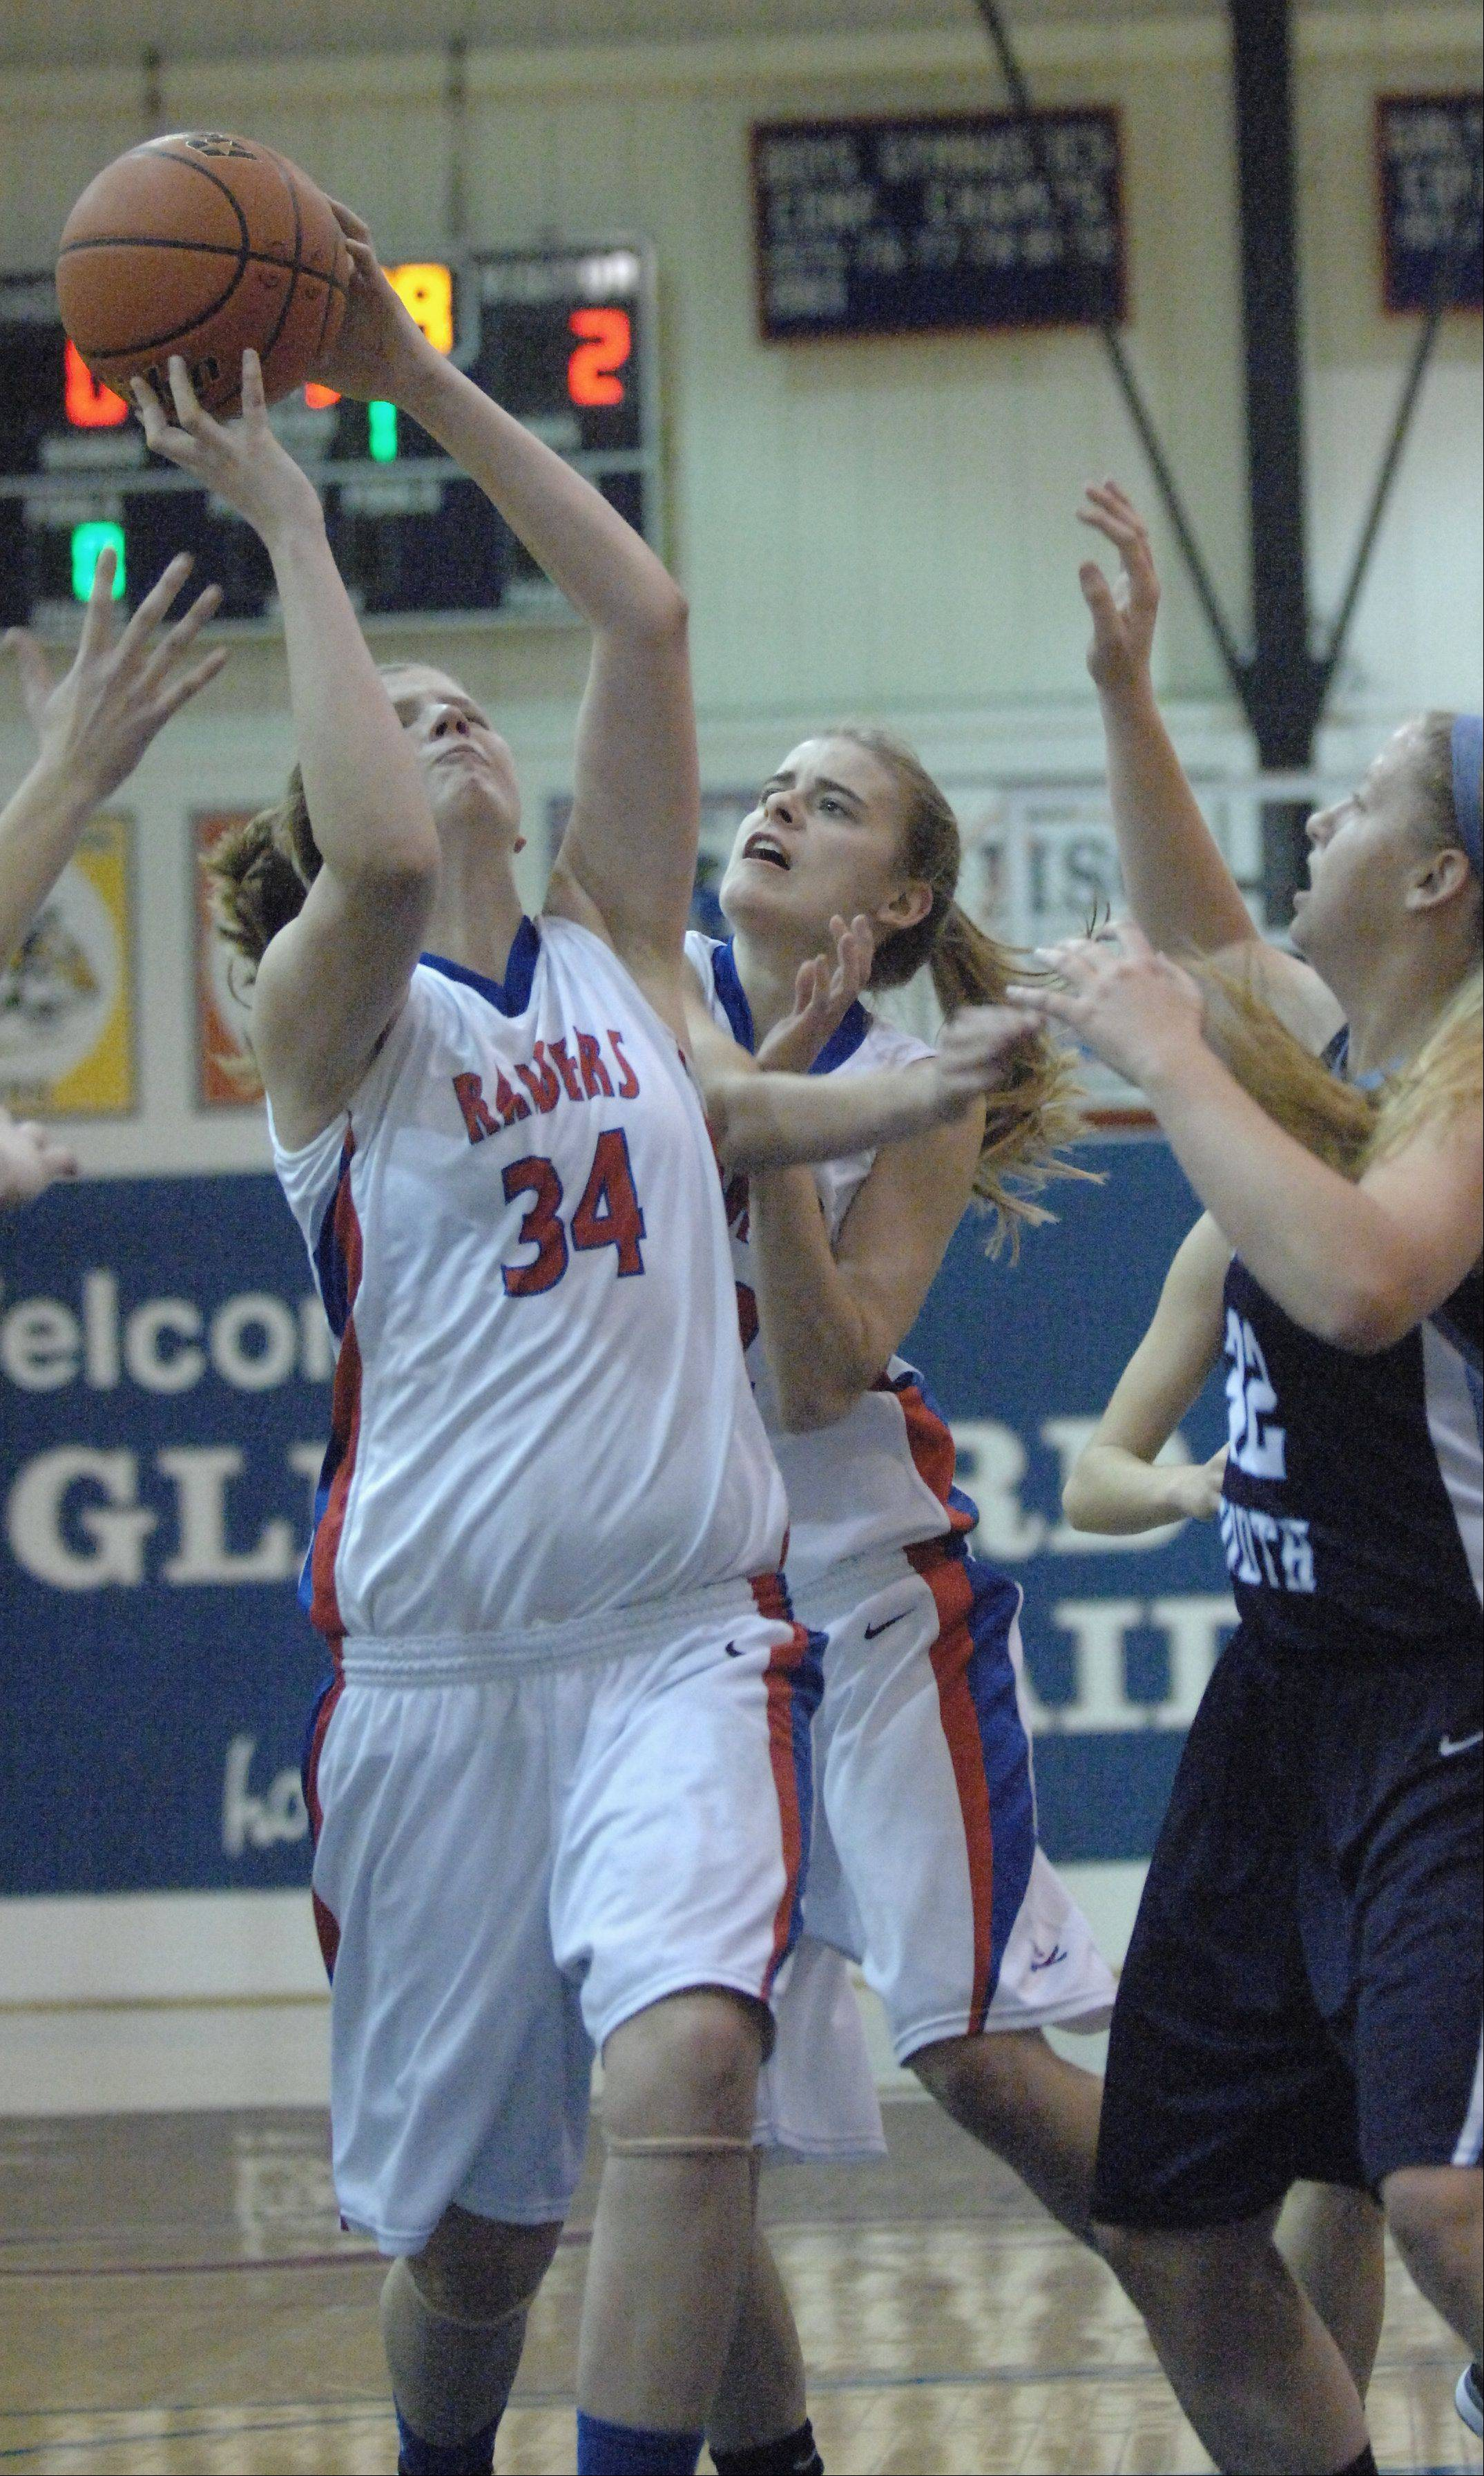 Glenbard South hosted Downers Grove South Thursday night for girls basketball.